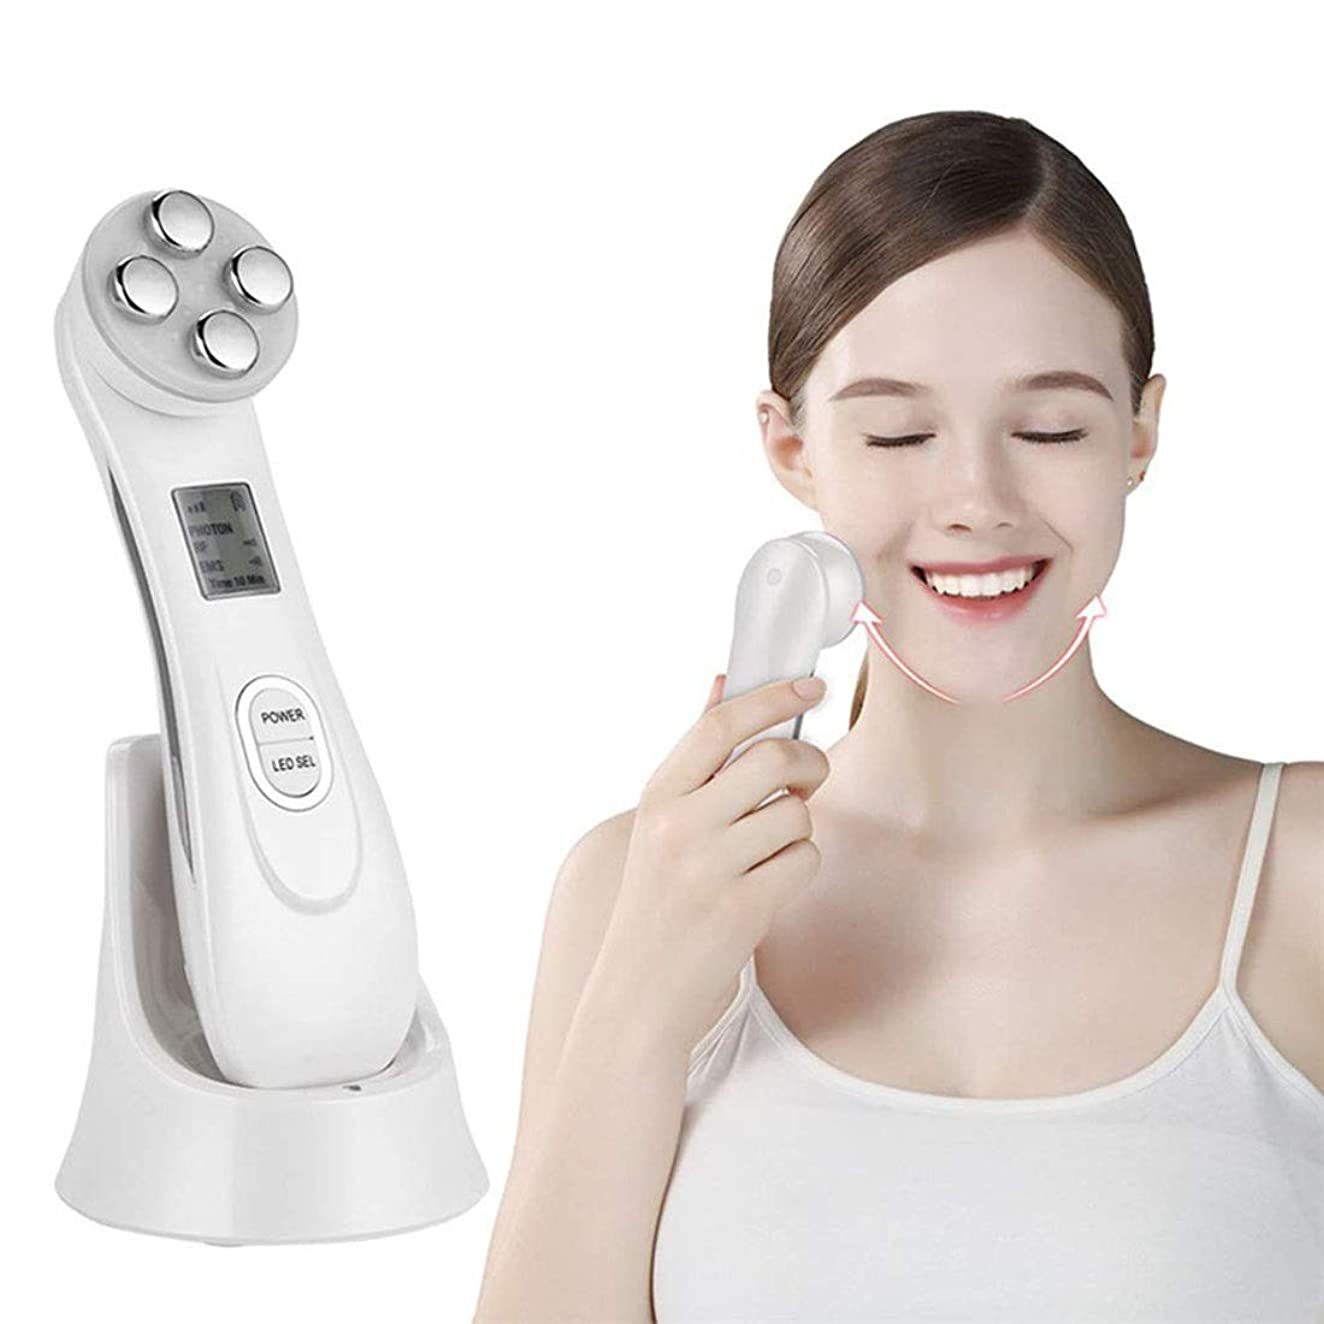 歌う長老真珠のようなSkin Tightening Machine, 5 In 1 Face Massager Facial Remover Wrinkle Skin Care Beauty Machine